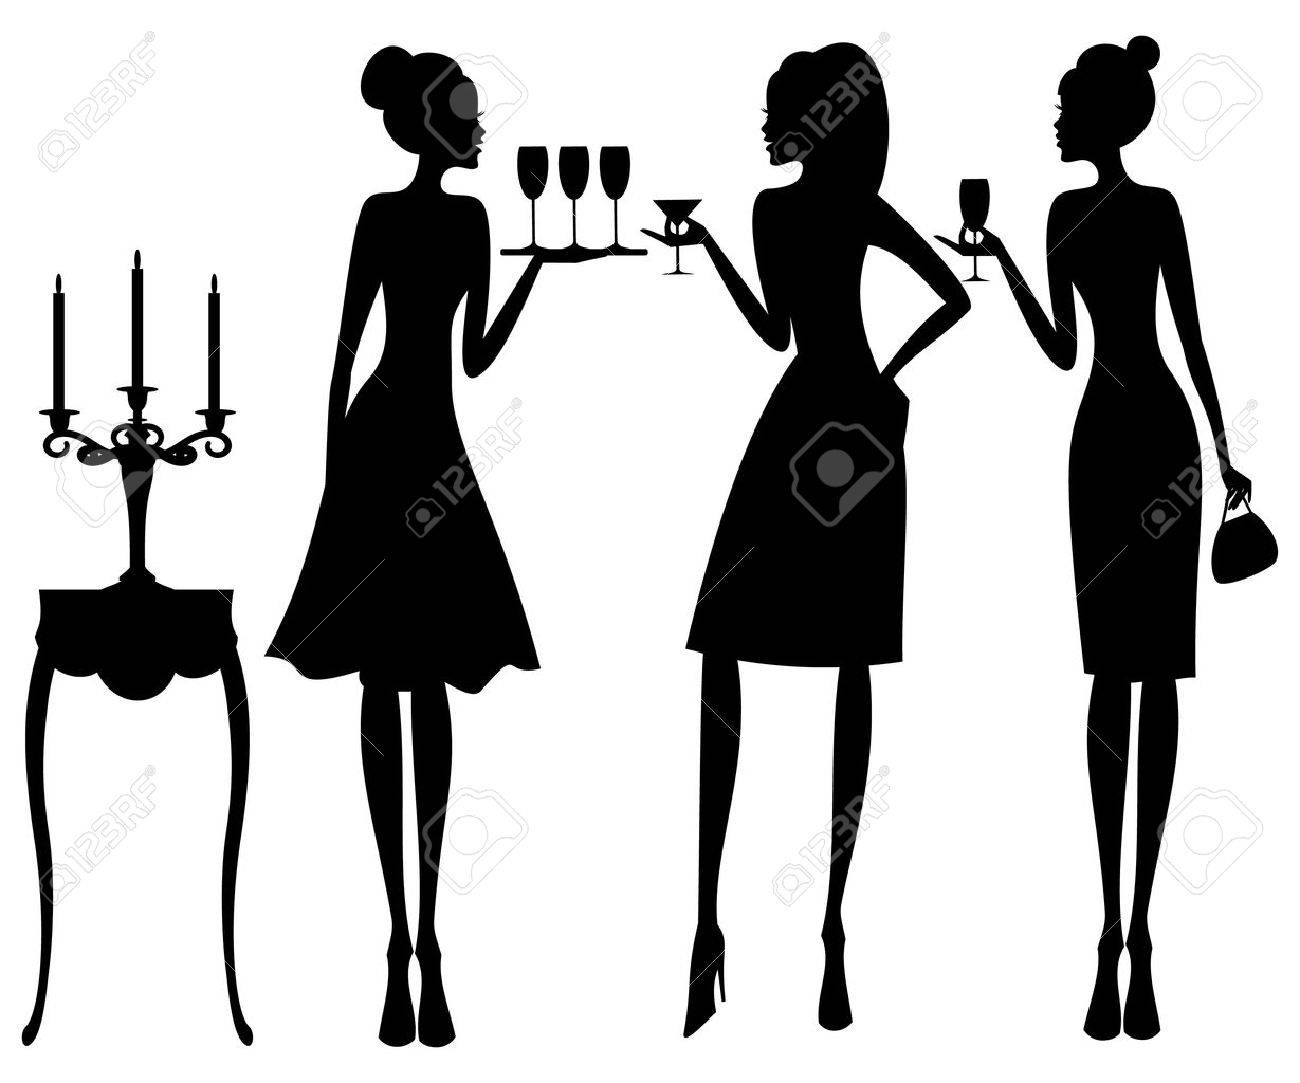 Vector illustration of three young elegant women at a cocktail party Stock Vector - 12394141